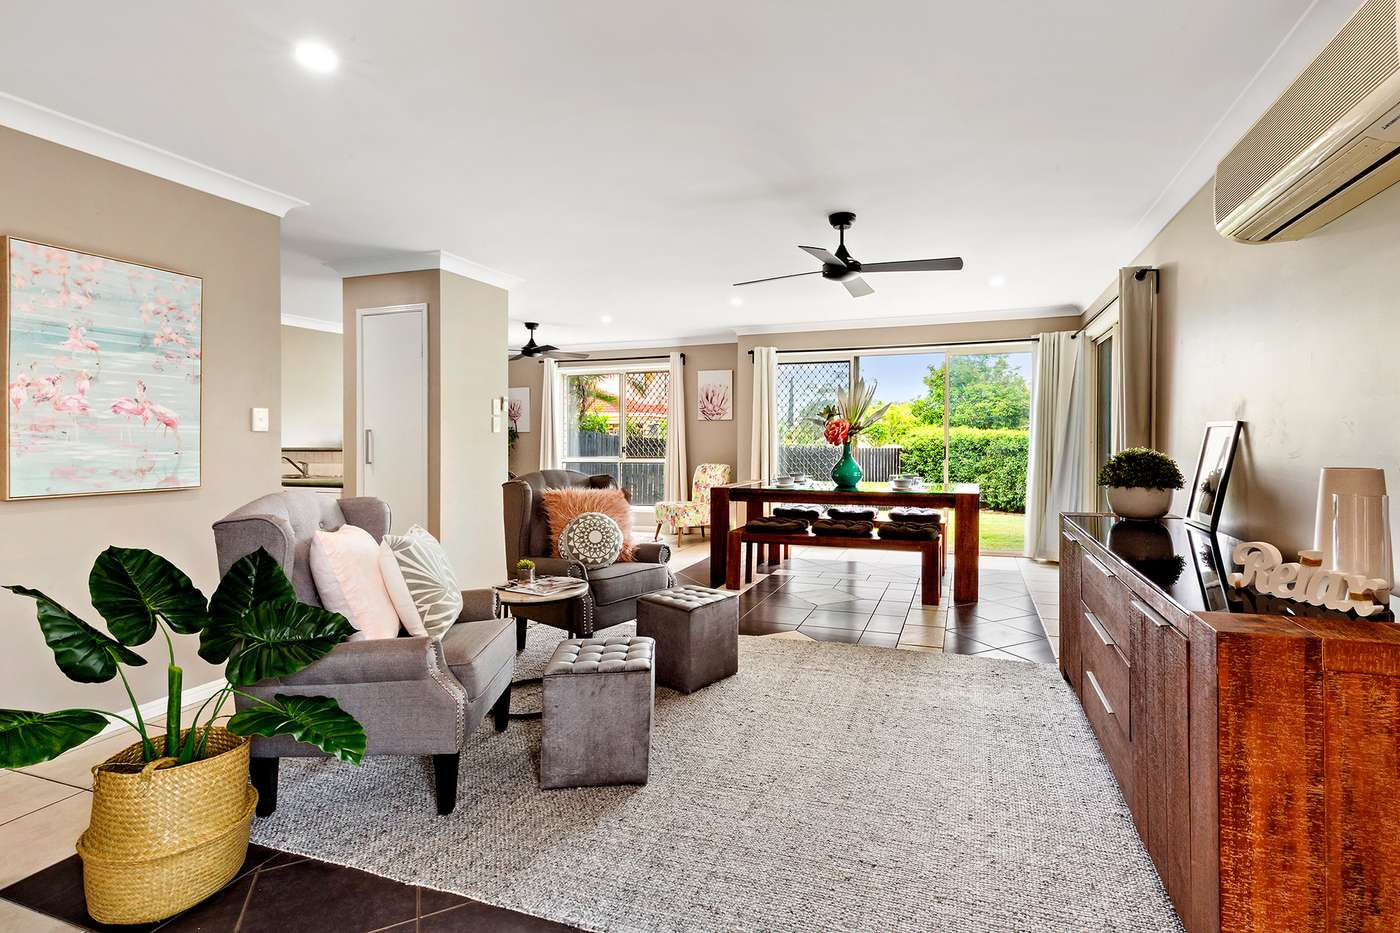 Main view of Homely house listing, 3/10 Penina Circuit, Cornubia, QLD 4130